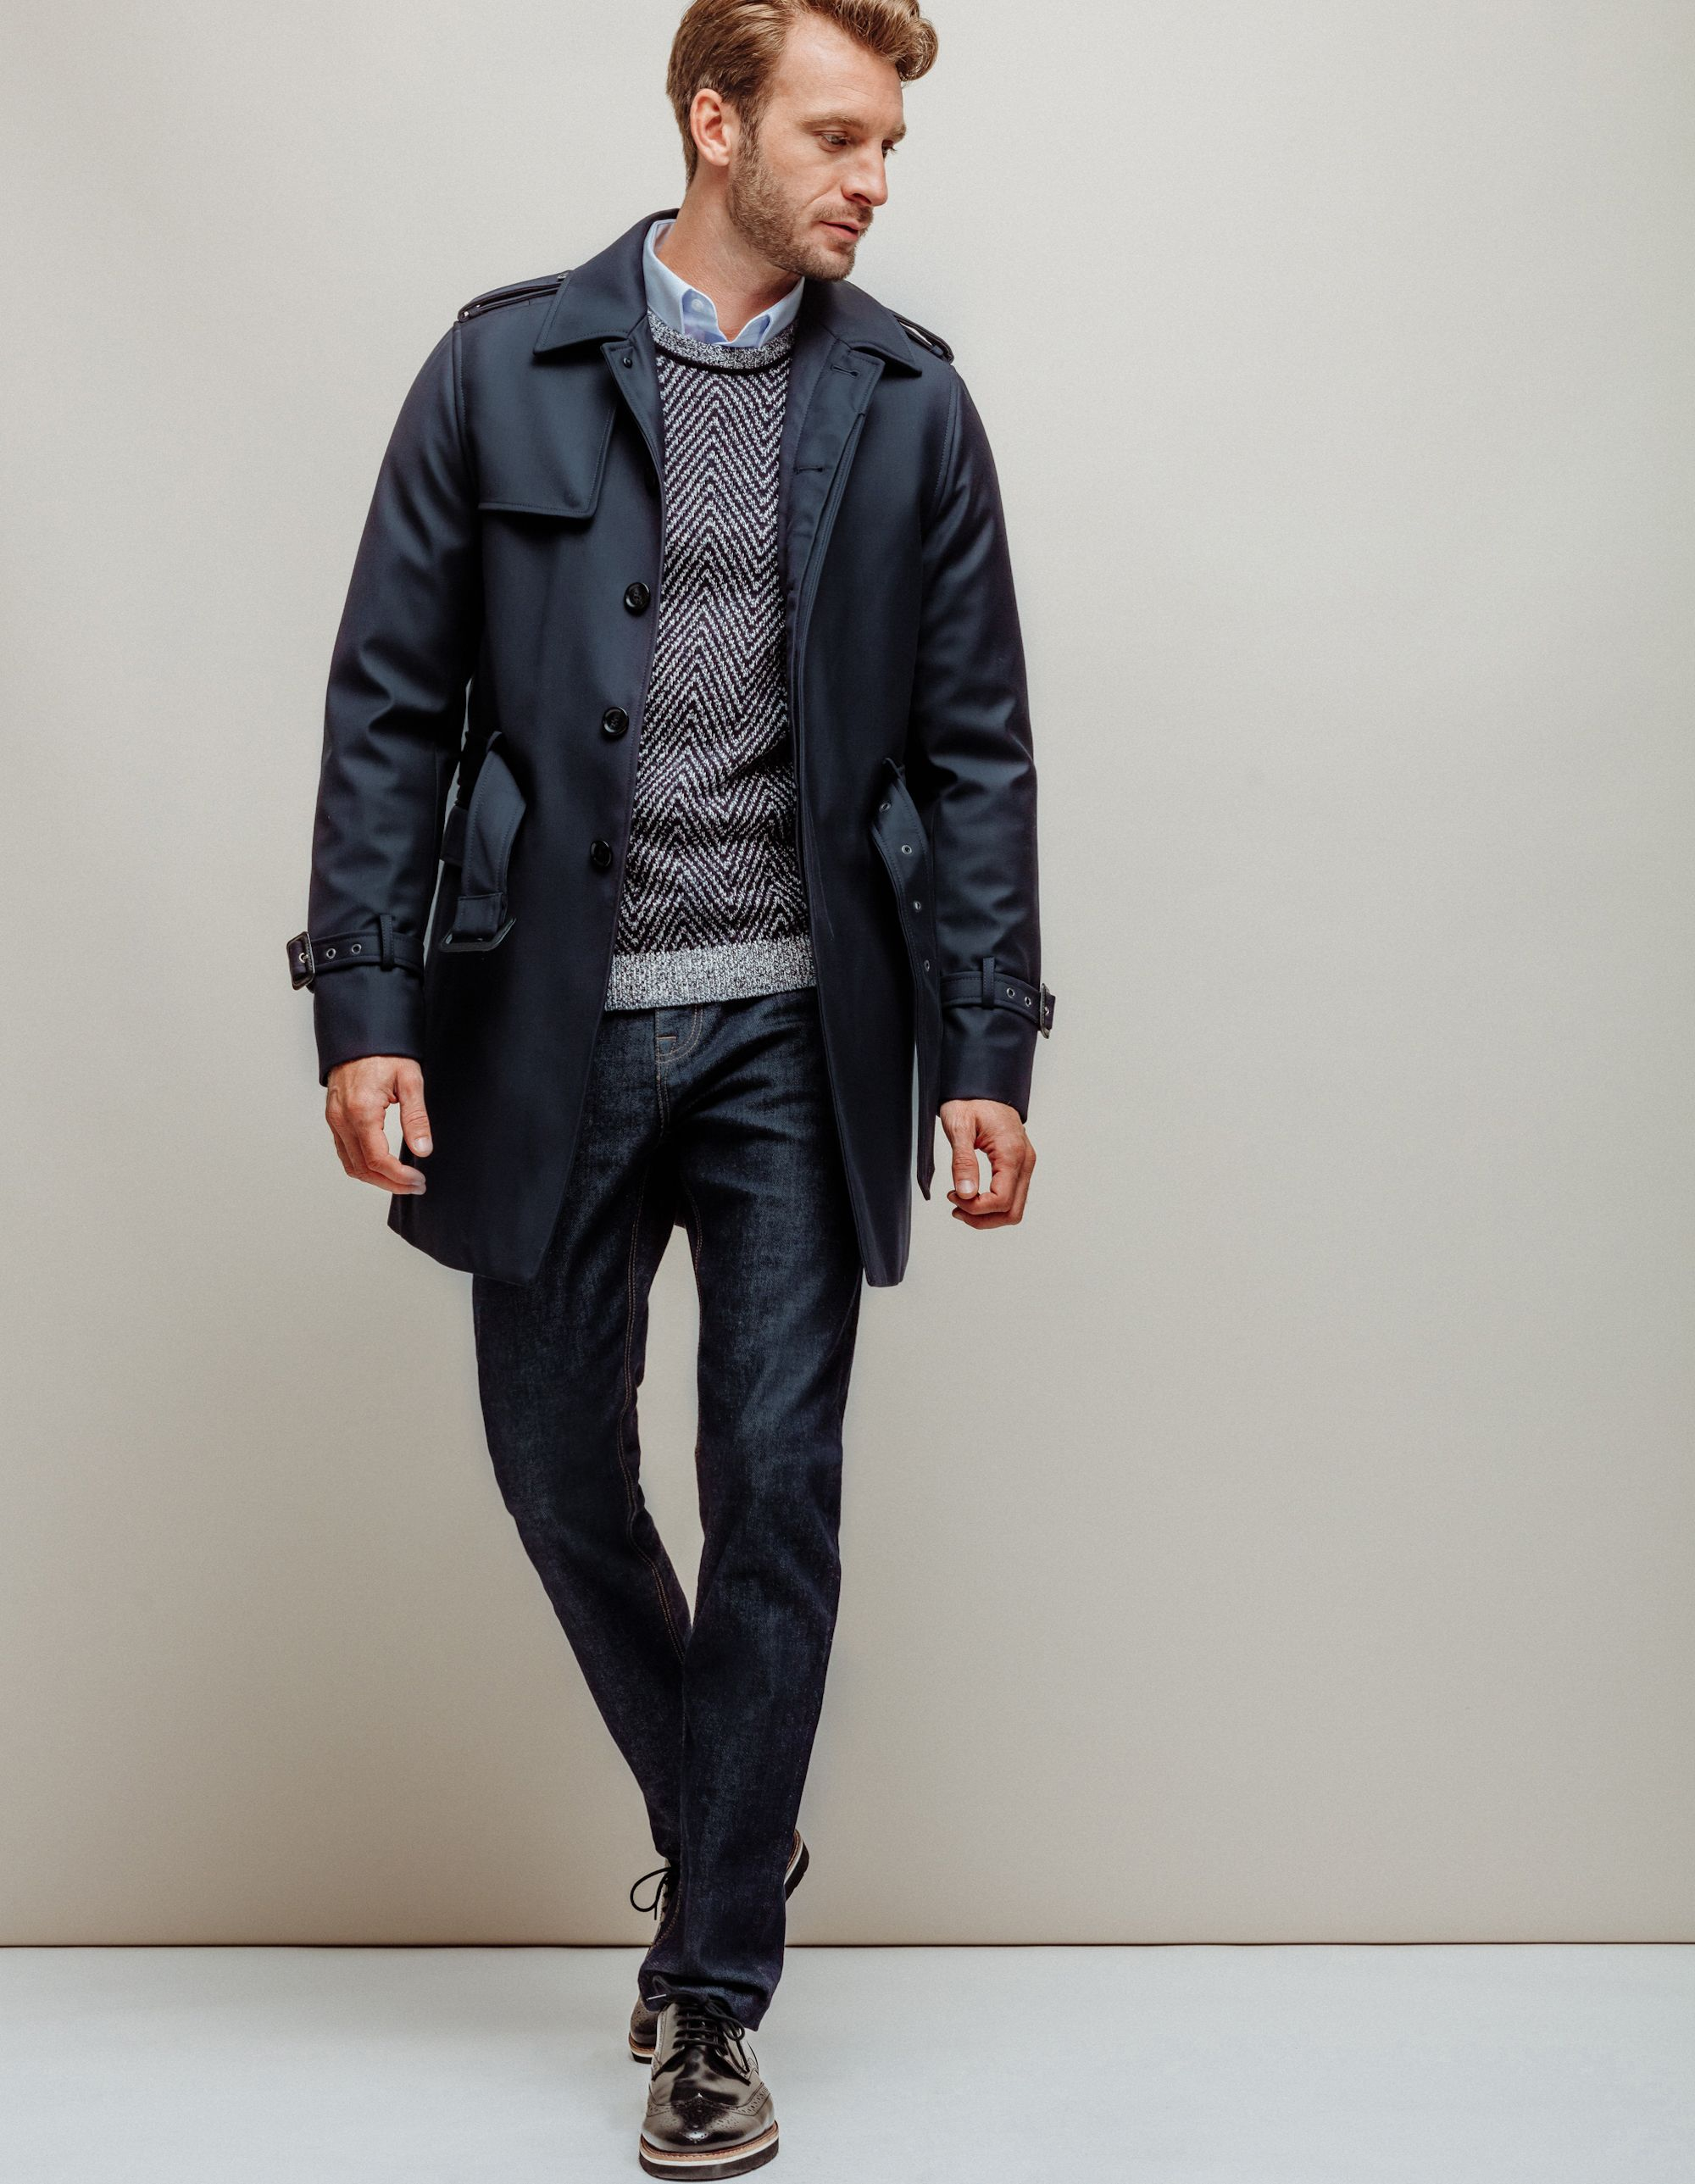 Homme Type Brice Mode Trench Trench Manteau Pinterest 8FROqvqW